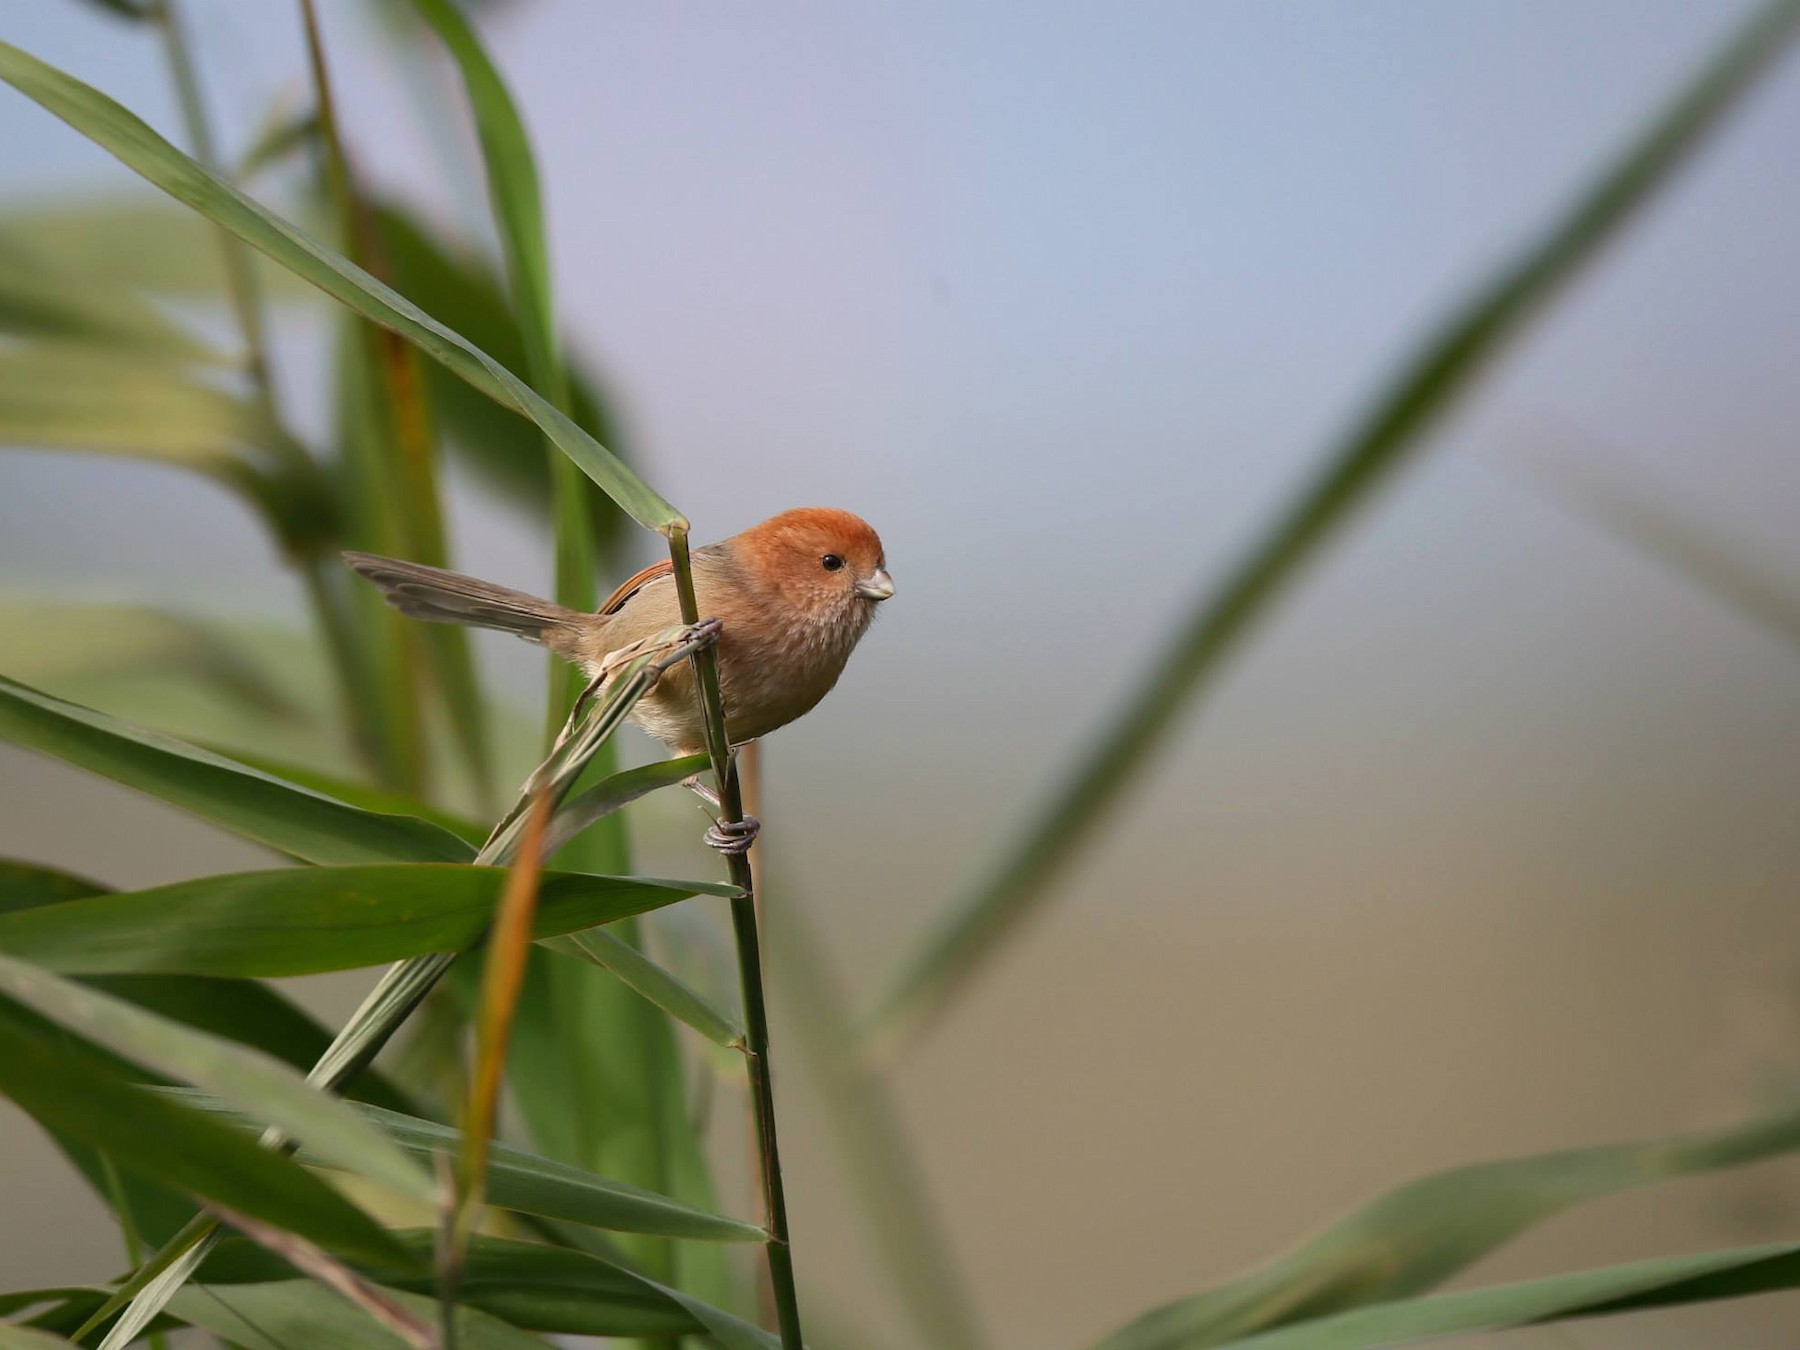 Vinous-throated Parrotbill - Ting-Wei (廷維) HUNG (洪)